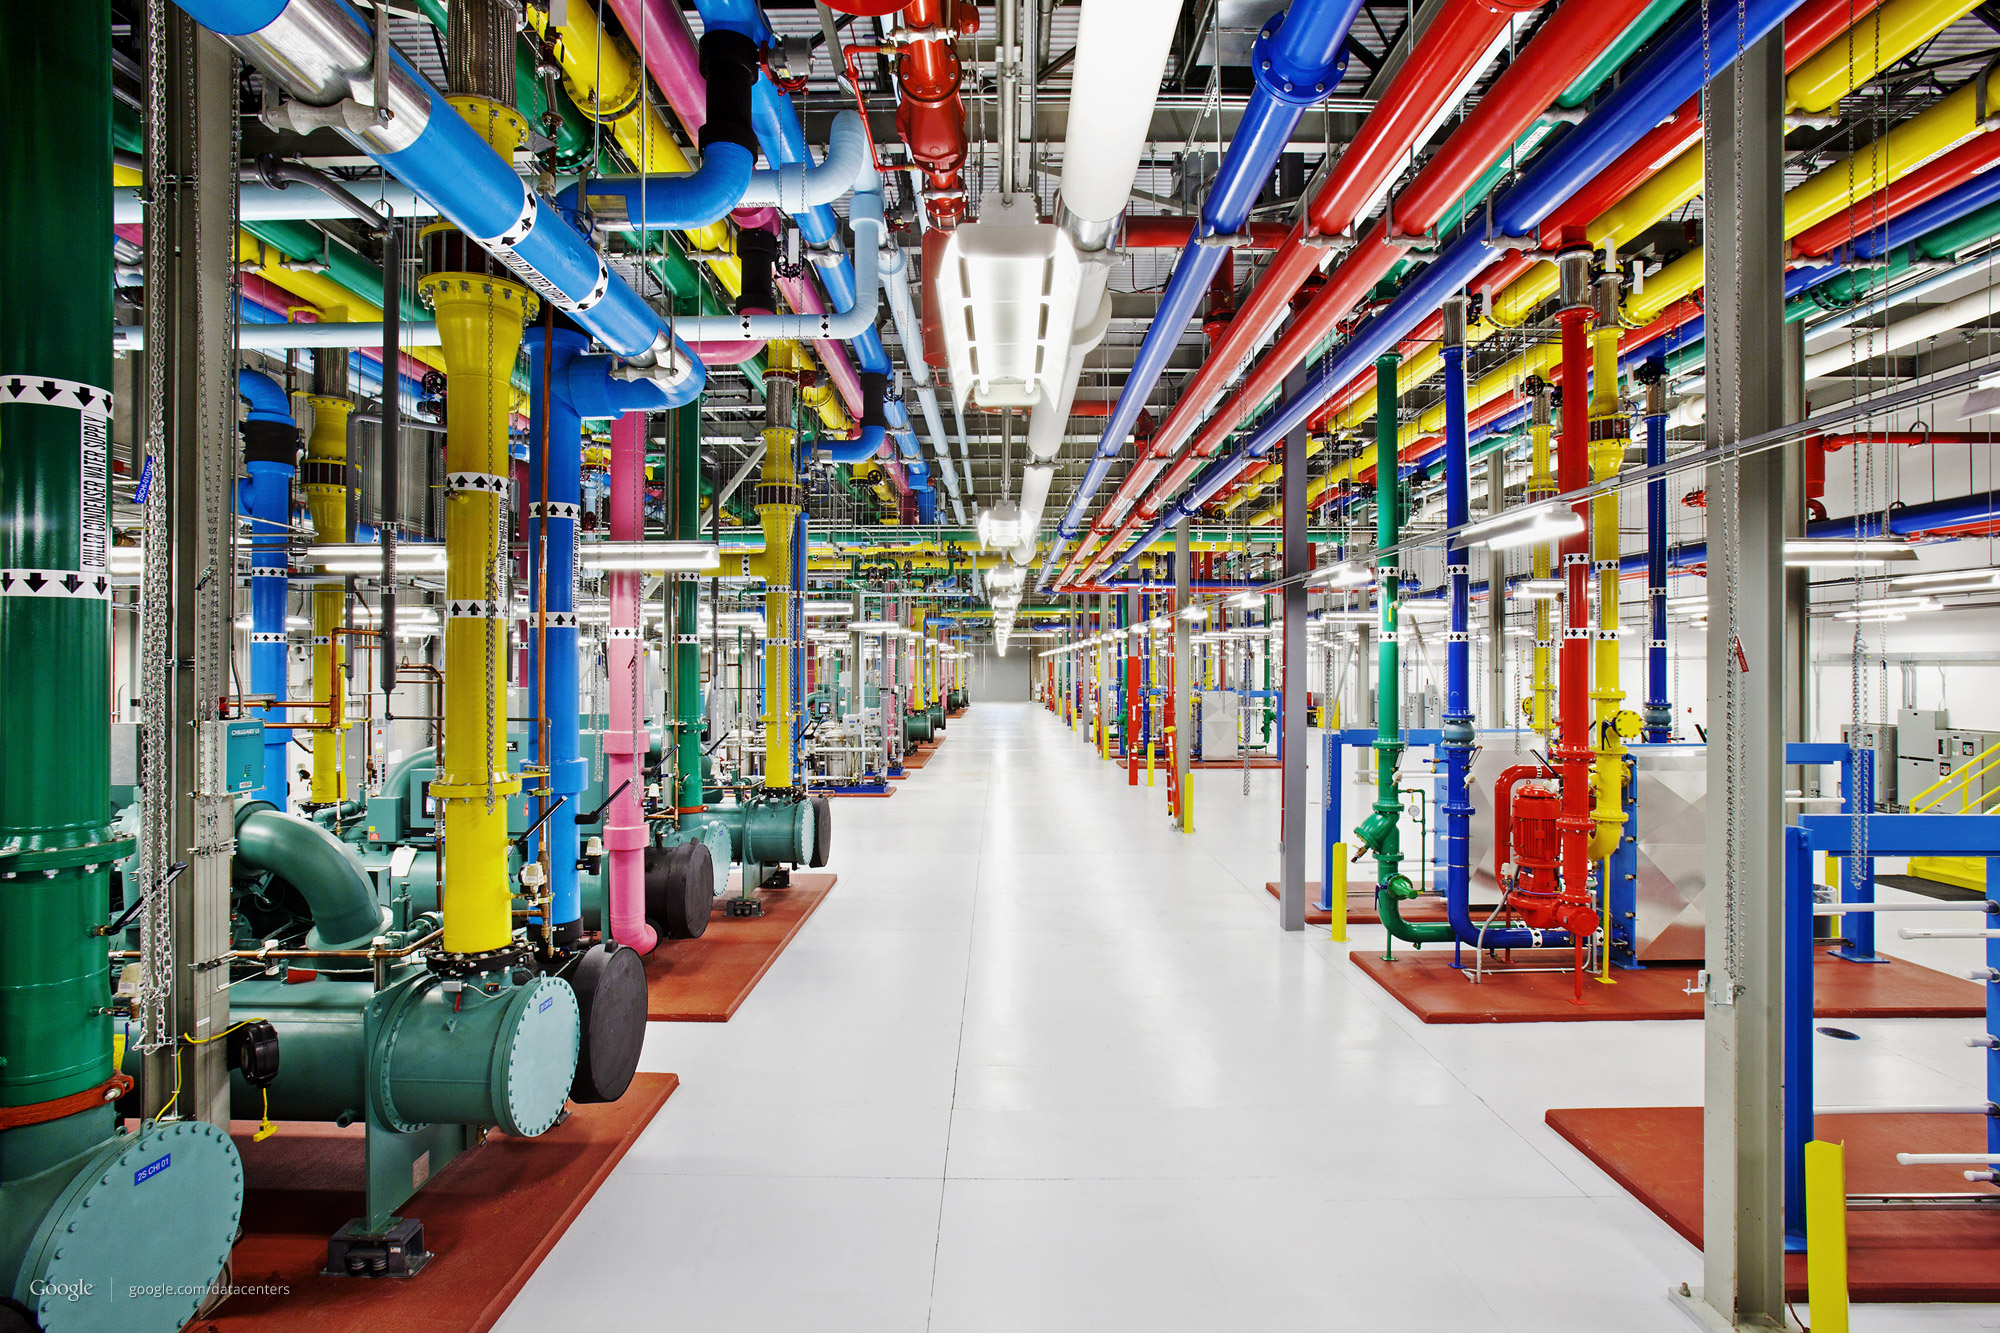 Google's data centers use color-coded pipes to indicate what they're used for. Pink means water headed for outside cooling towers.